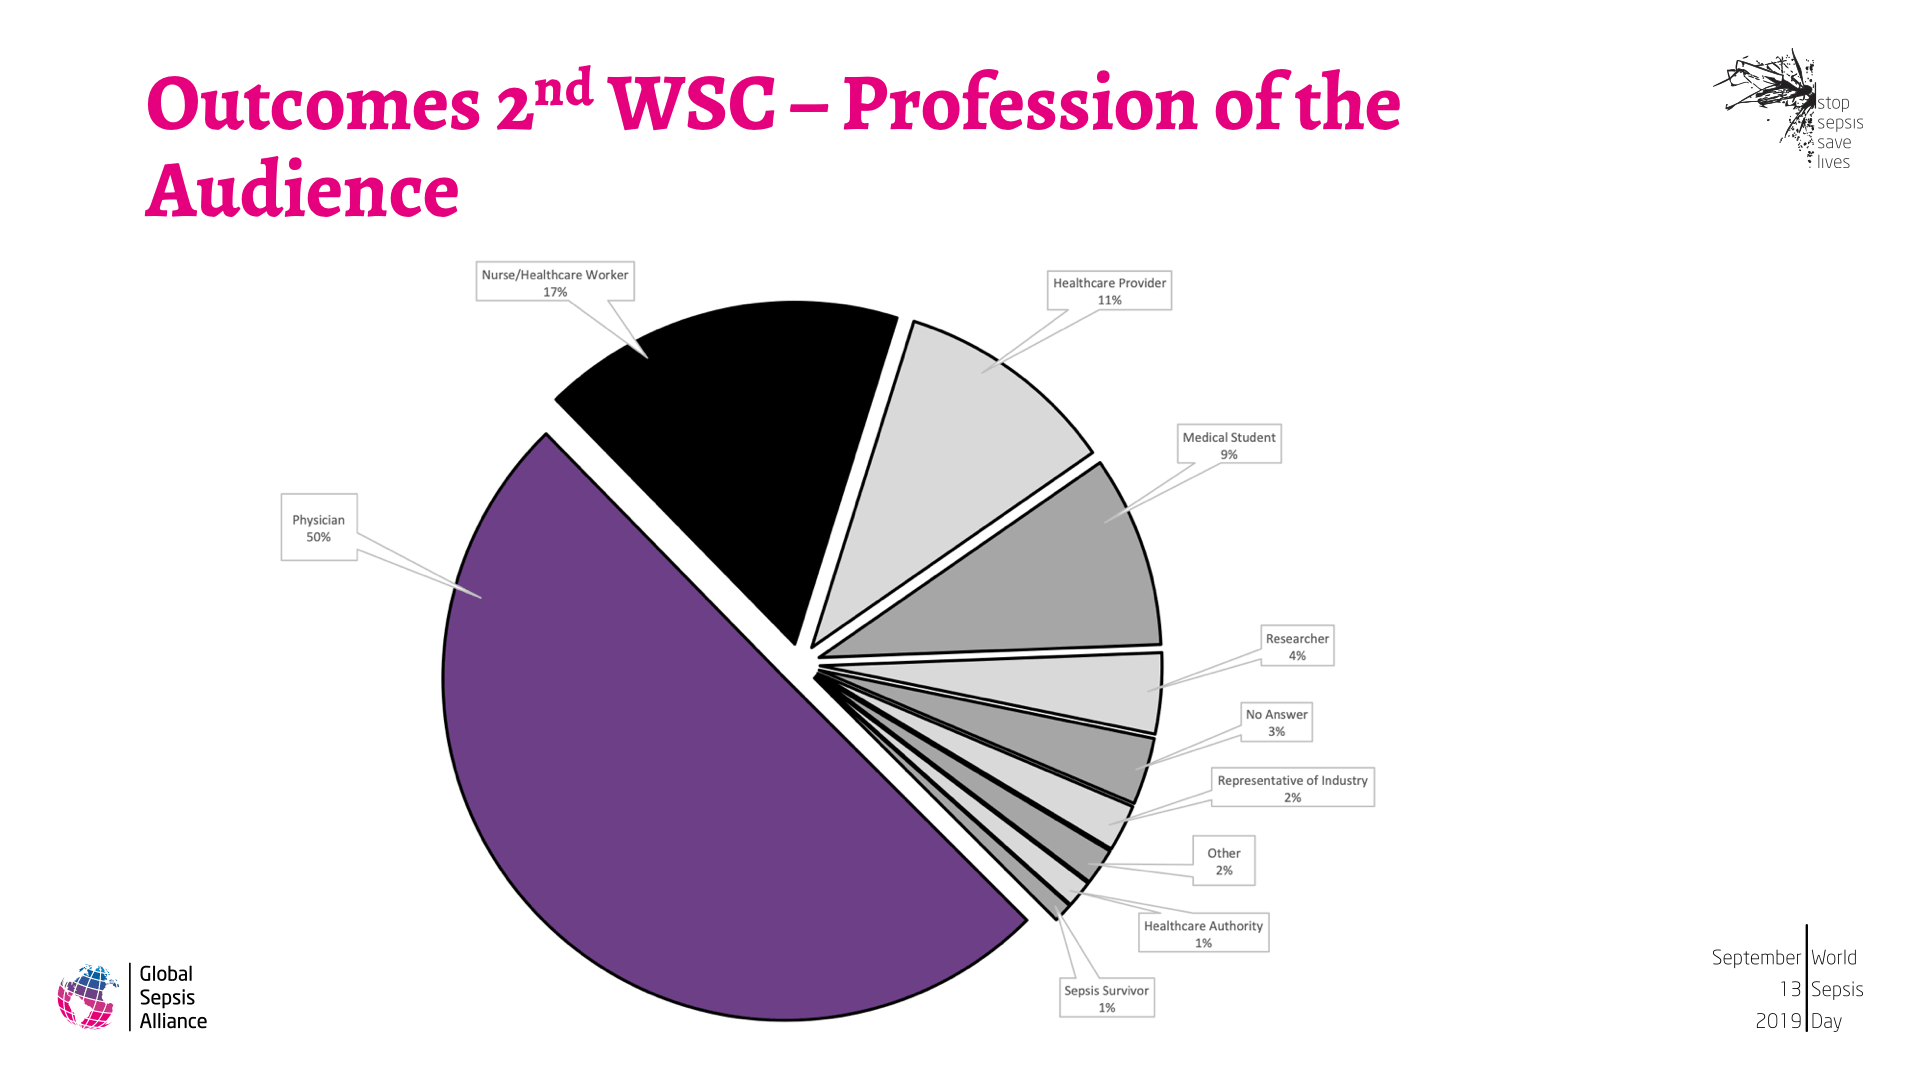 Outcomes 2nd WSC and WSD 2018 4.png